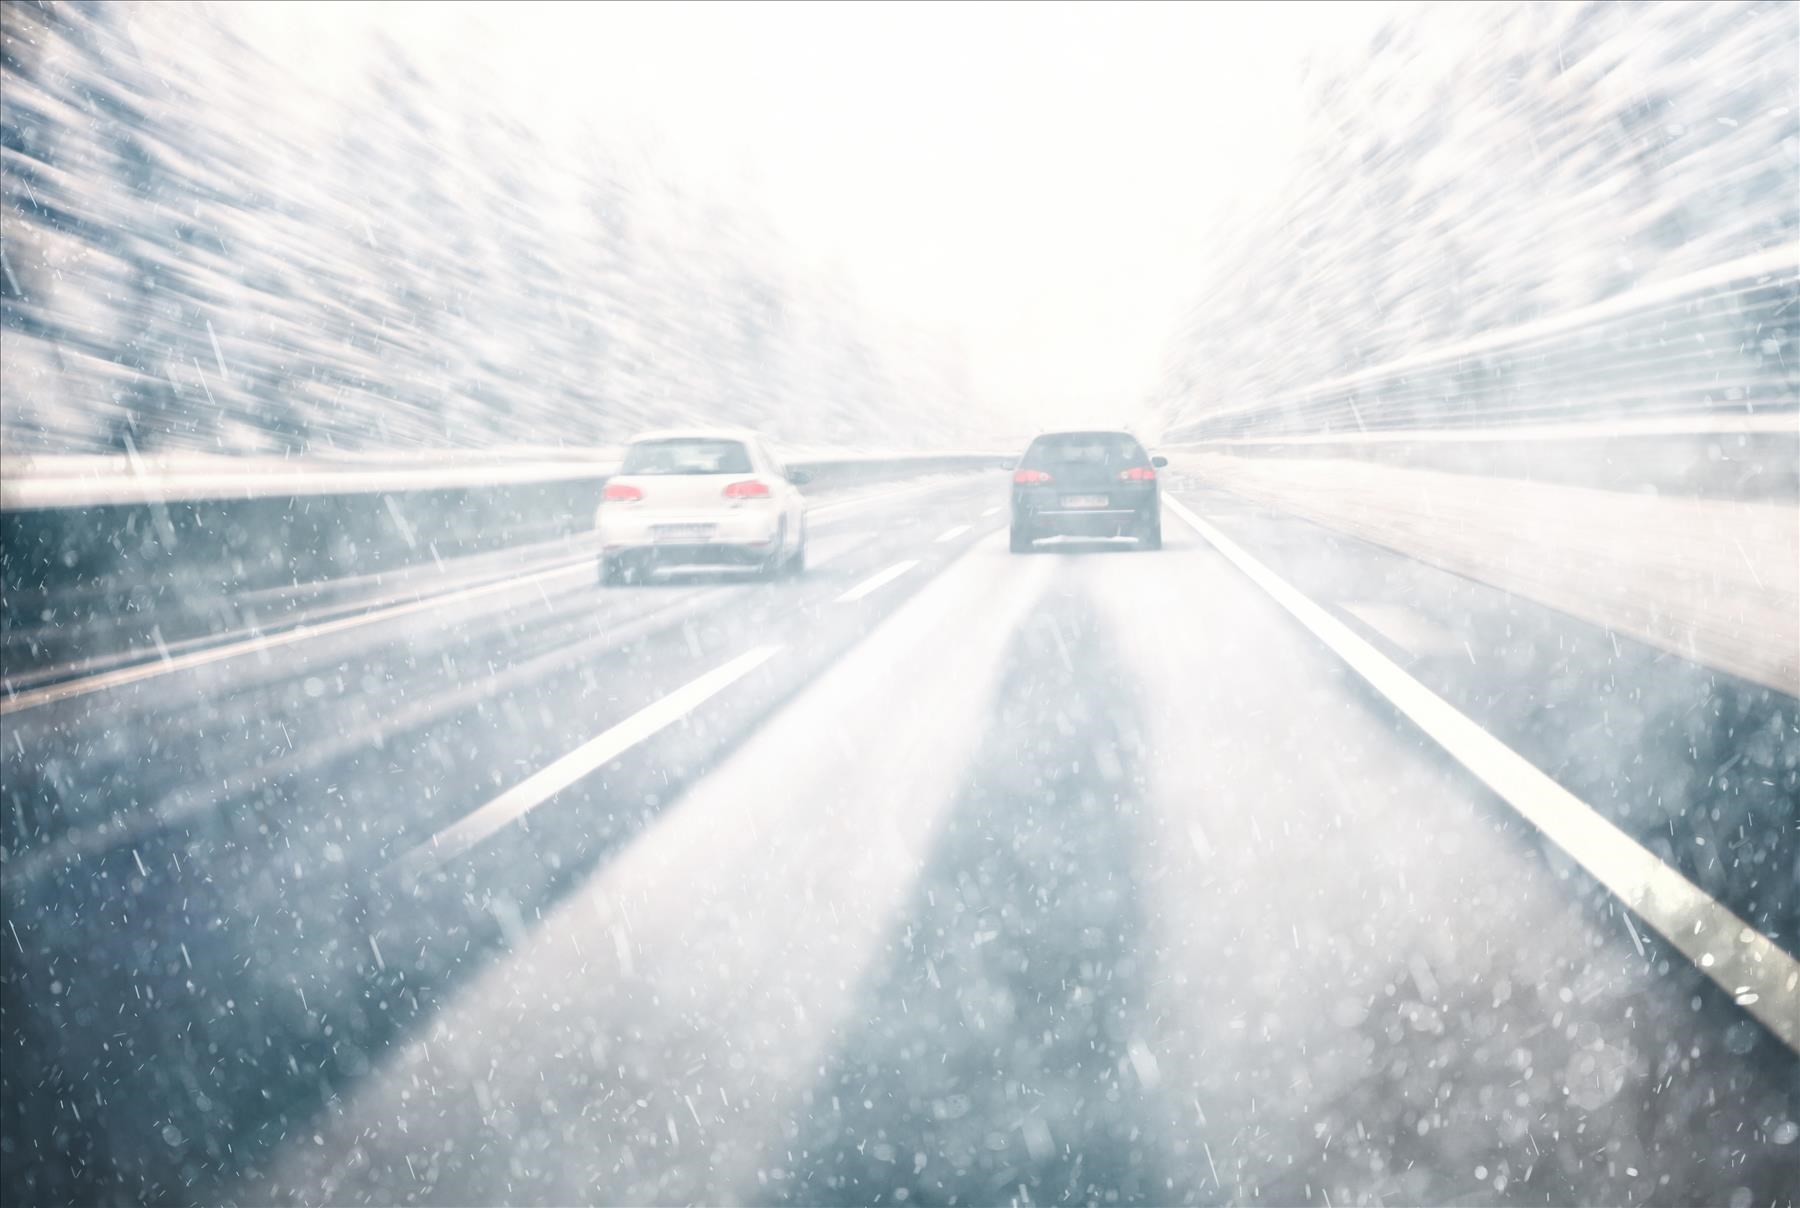 Driving in Heavy Snowfall and Contacting a Personal Injury Law Firm if an Accident Occurs